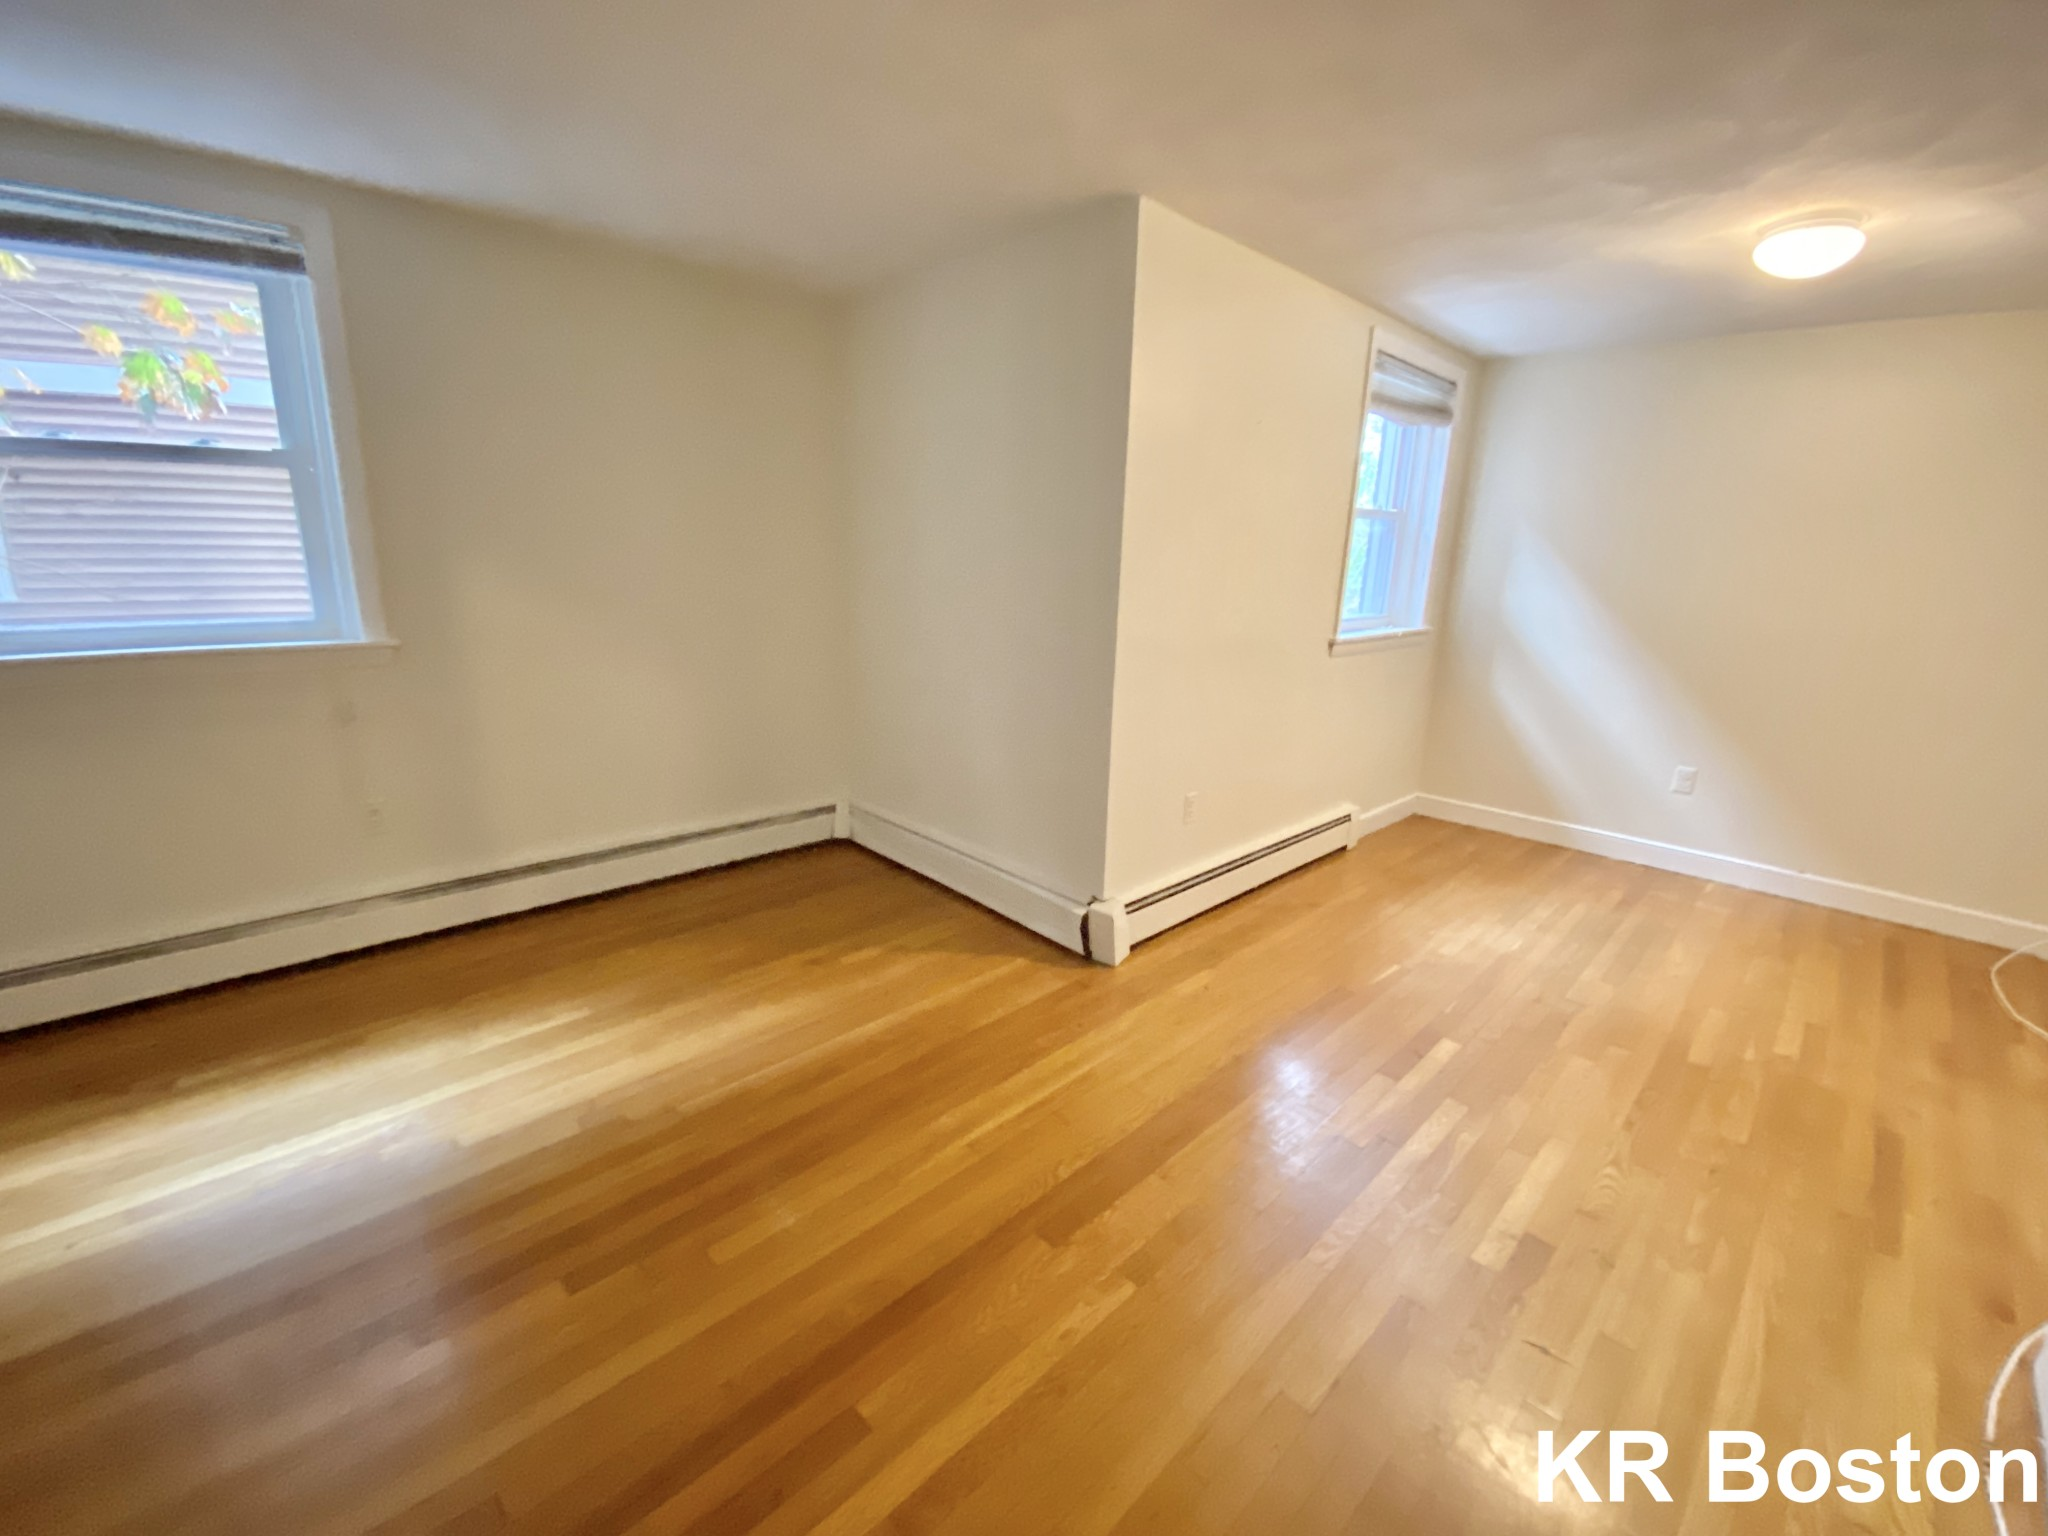 2 Beds, 1 Bath apartment in Brookline for $2,195